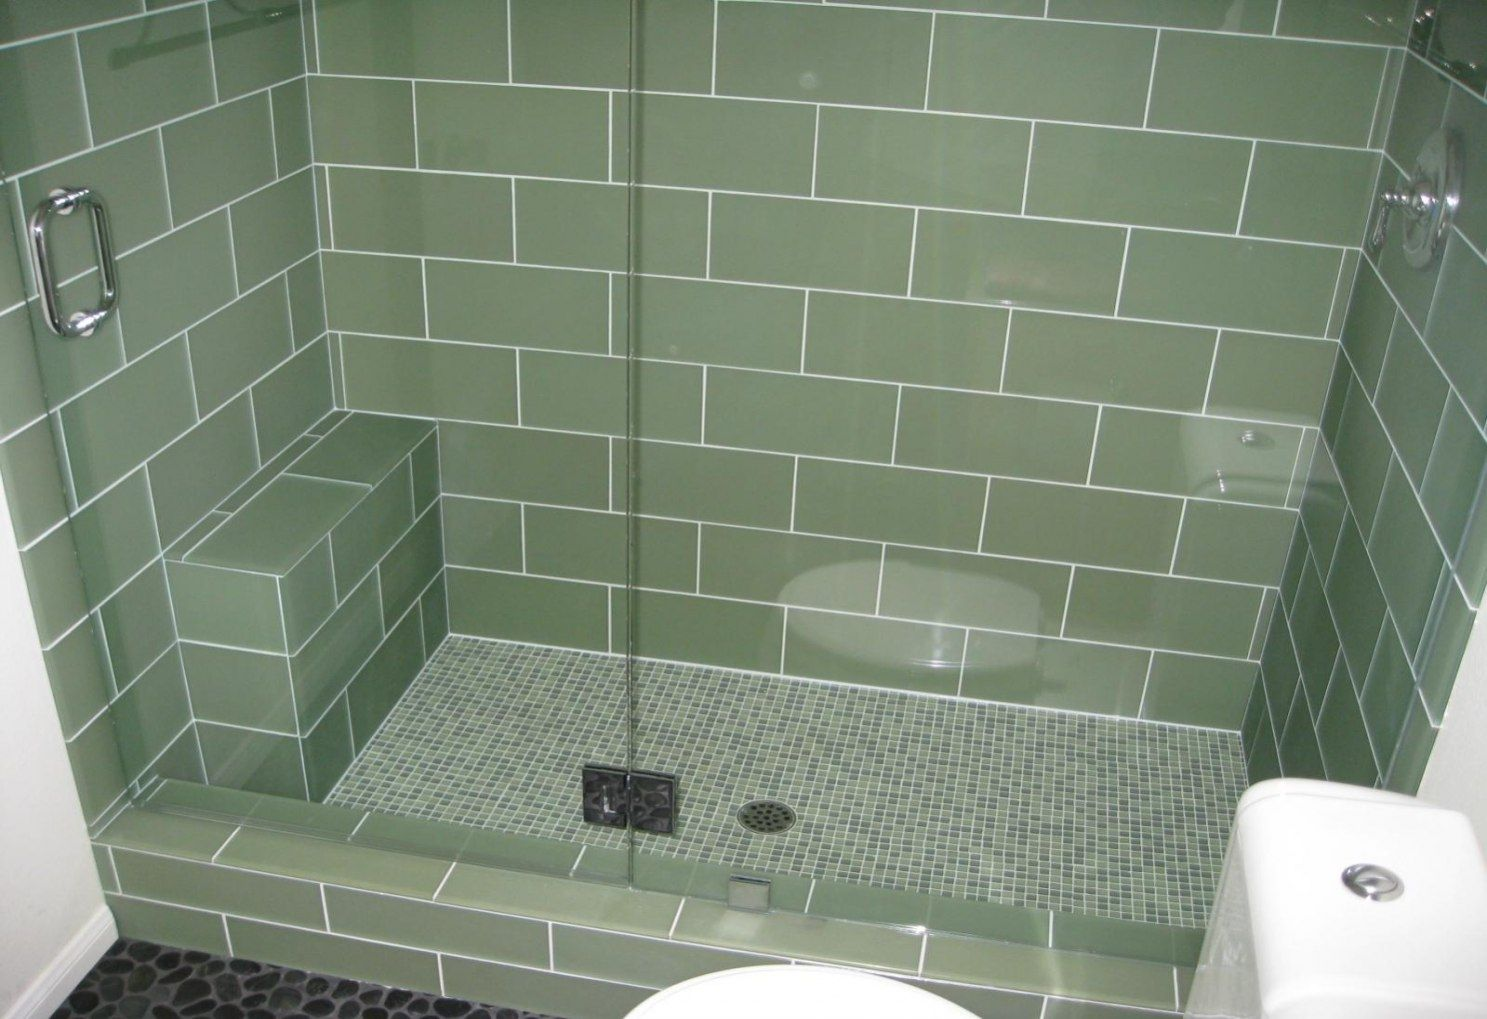 Pebble Stone Tile Bathroom Ideas Part - 37: Pebble-stone-shower-floor-with-subway-tile-and-